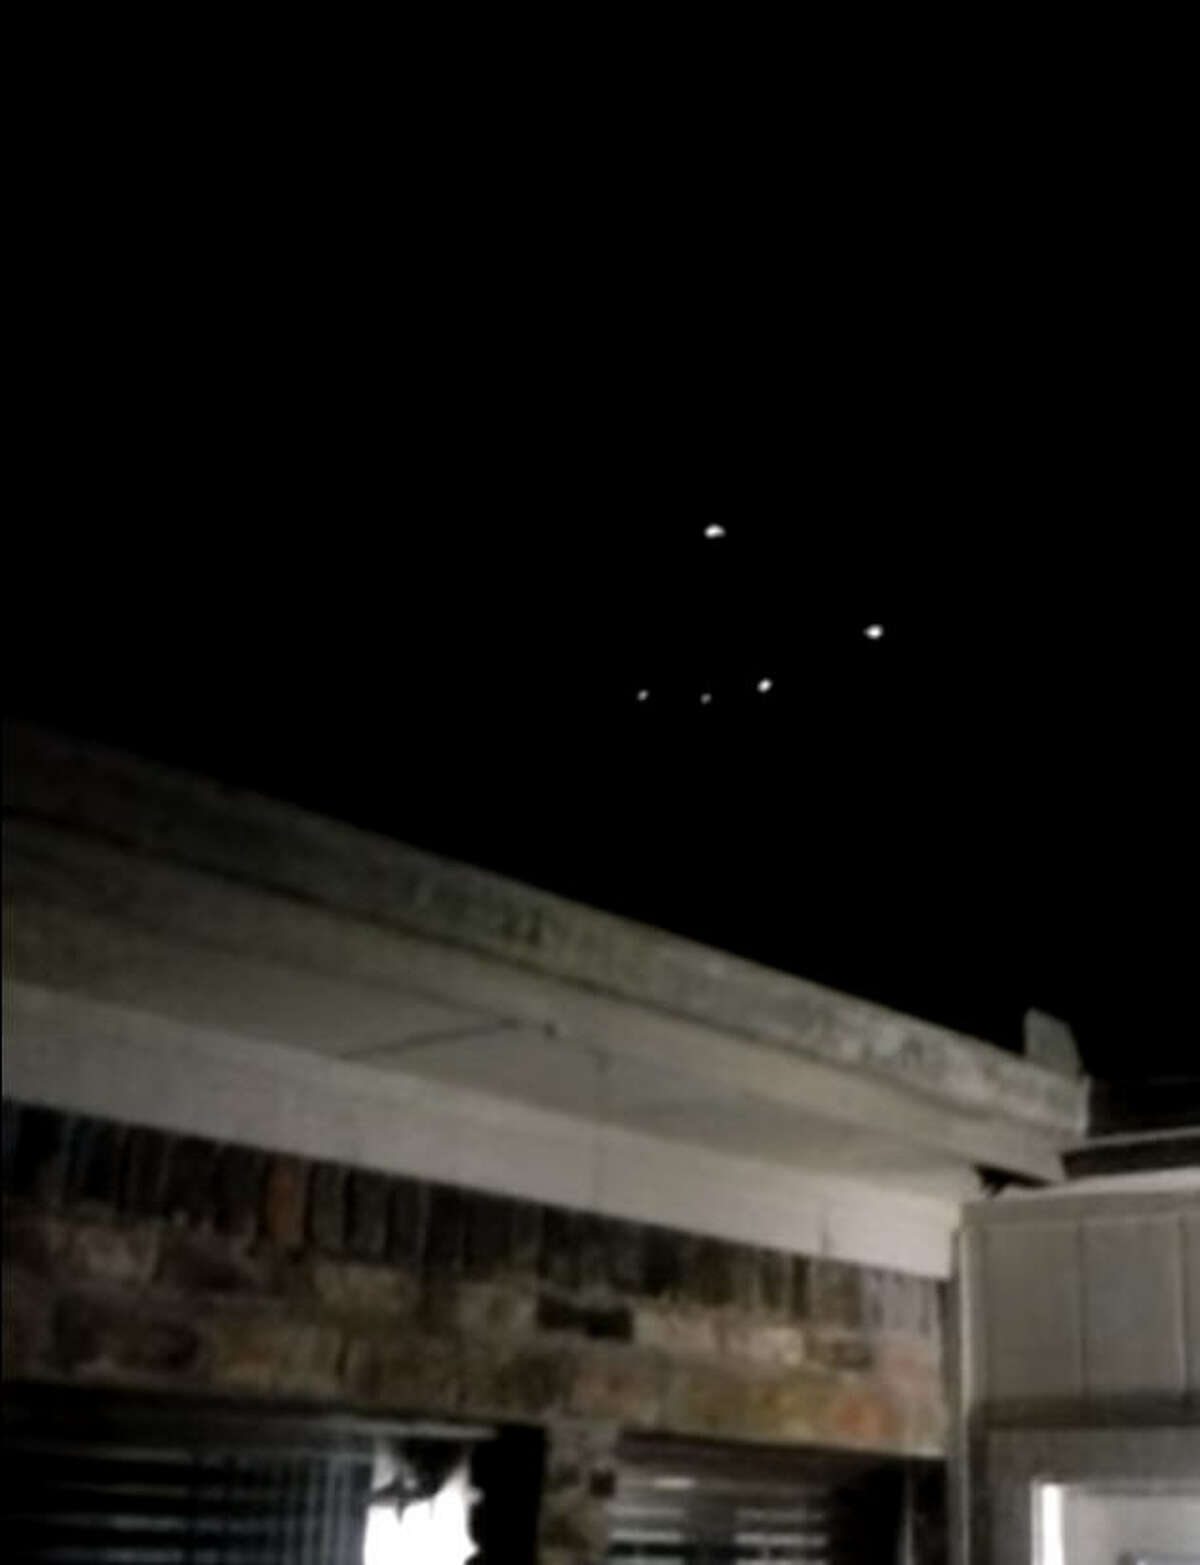 Home video from Conroe, Texas, captured the lights of a purported alien spacecraft in early November. Credit: John Hernandez